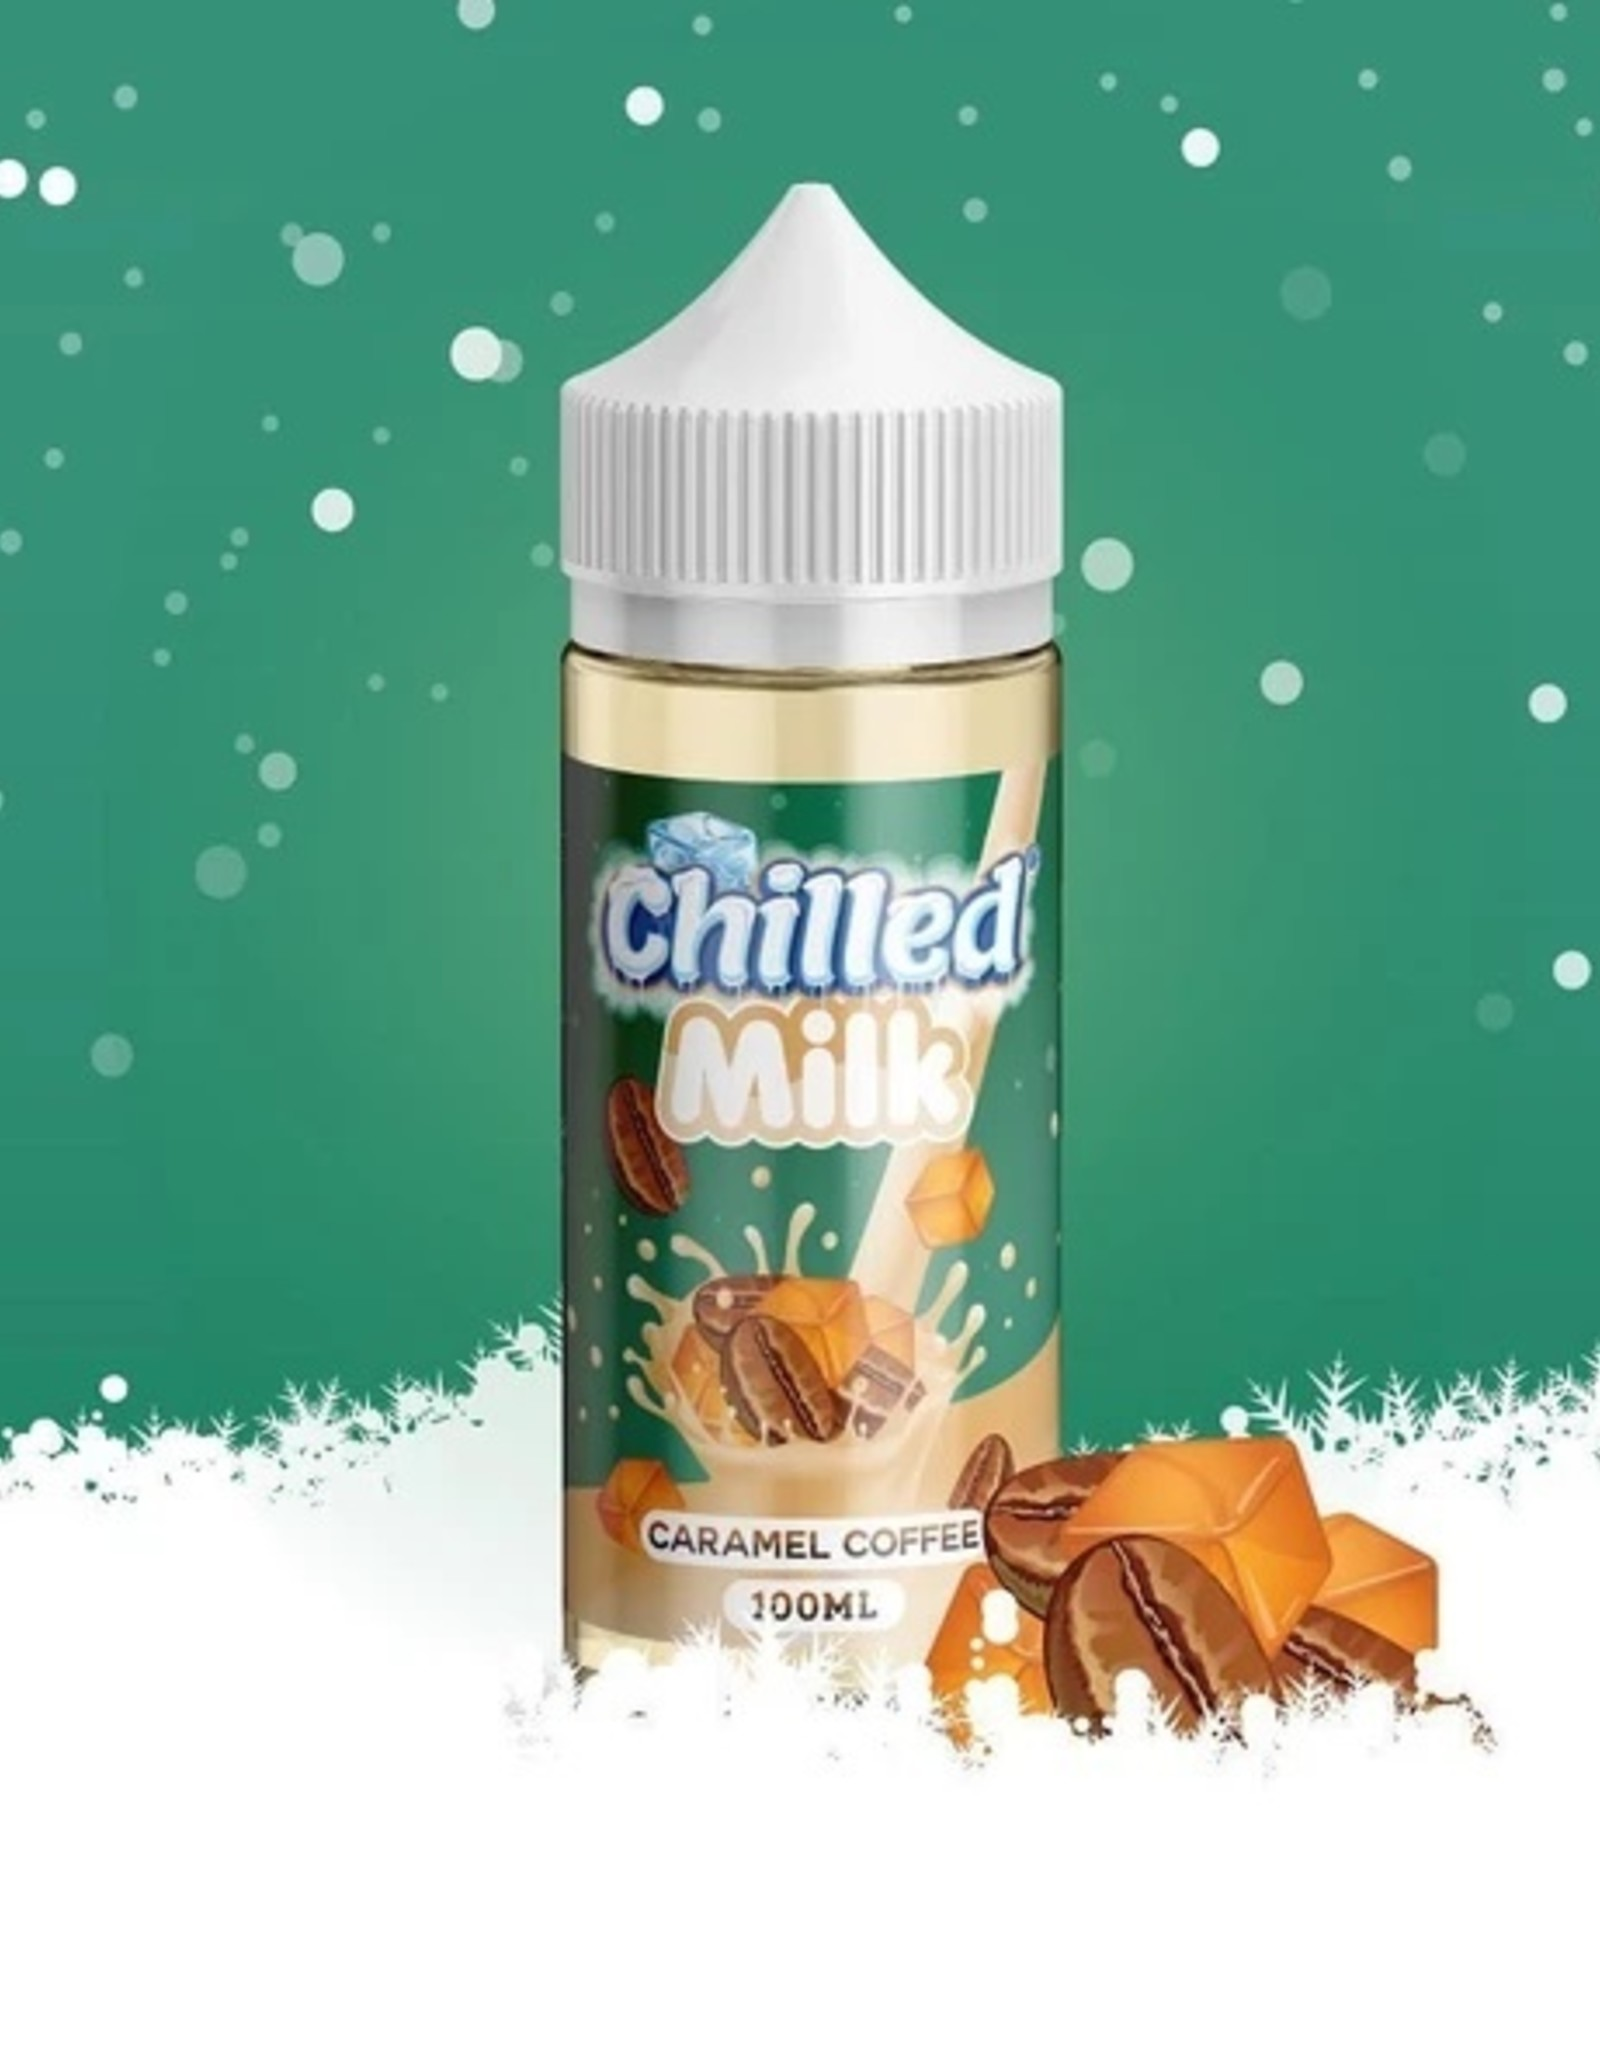 Chilled Milk Caramel Coffee By Chilled Milk